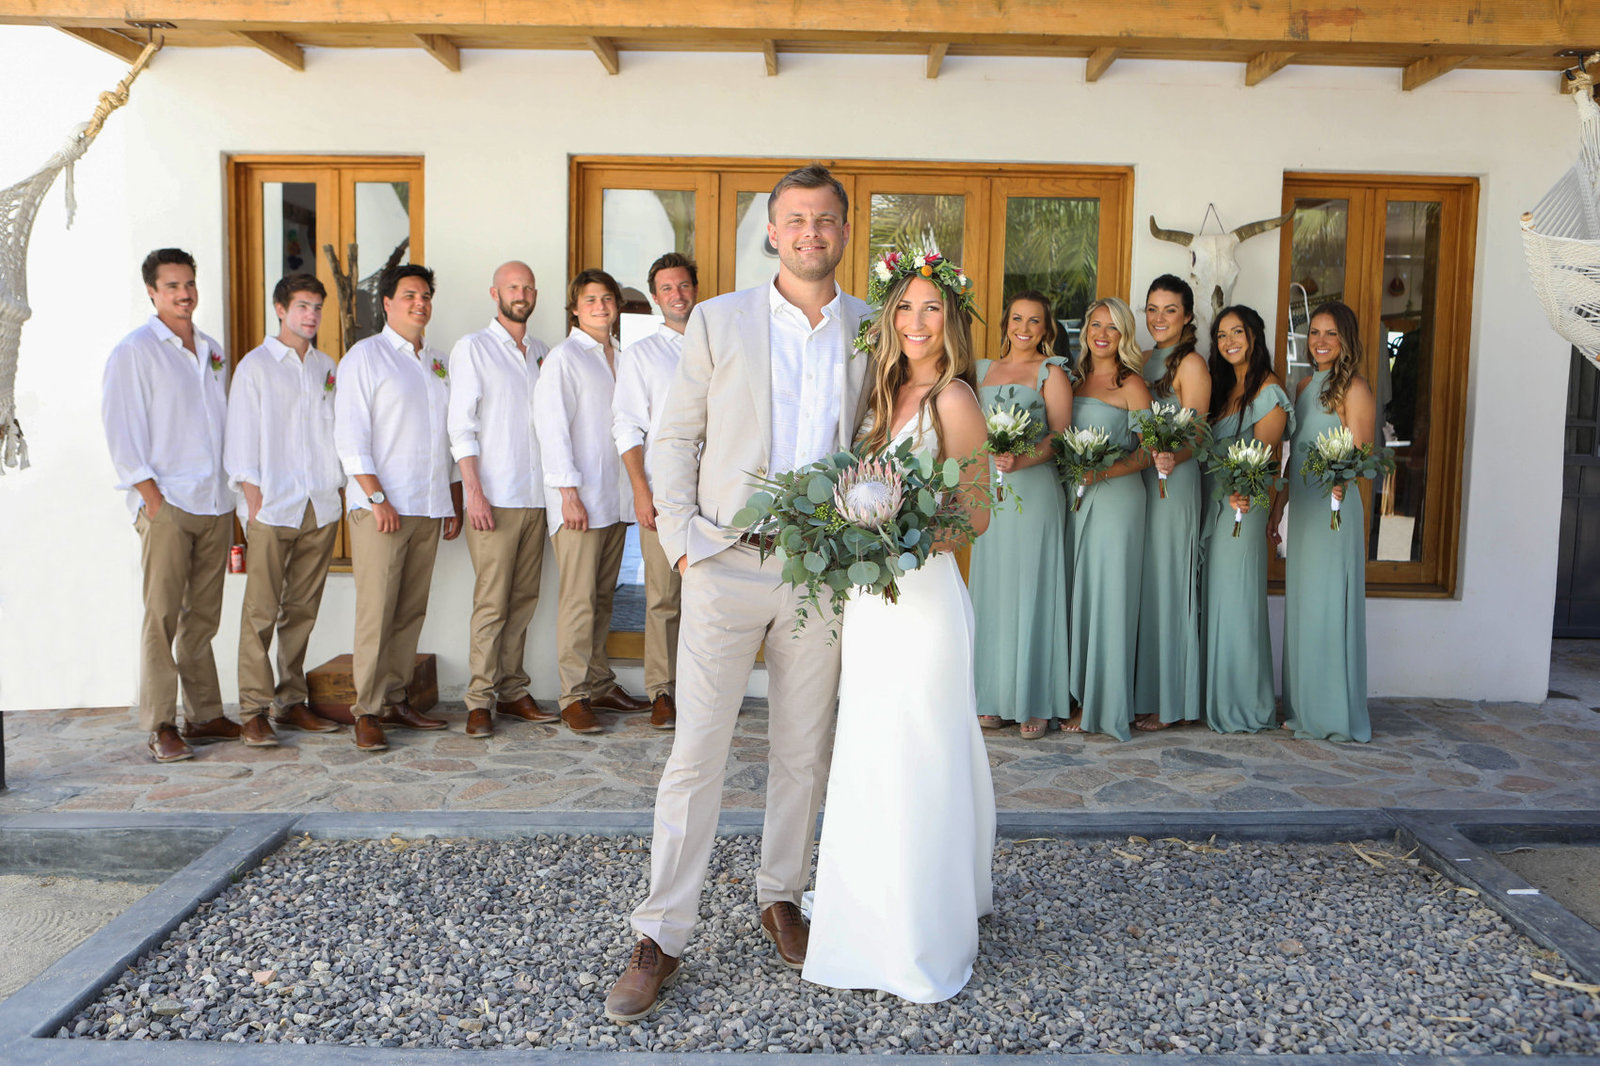 Portrait of bride and groom with bridesmaids and groomsmen, colorful wedding in Mexico